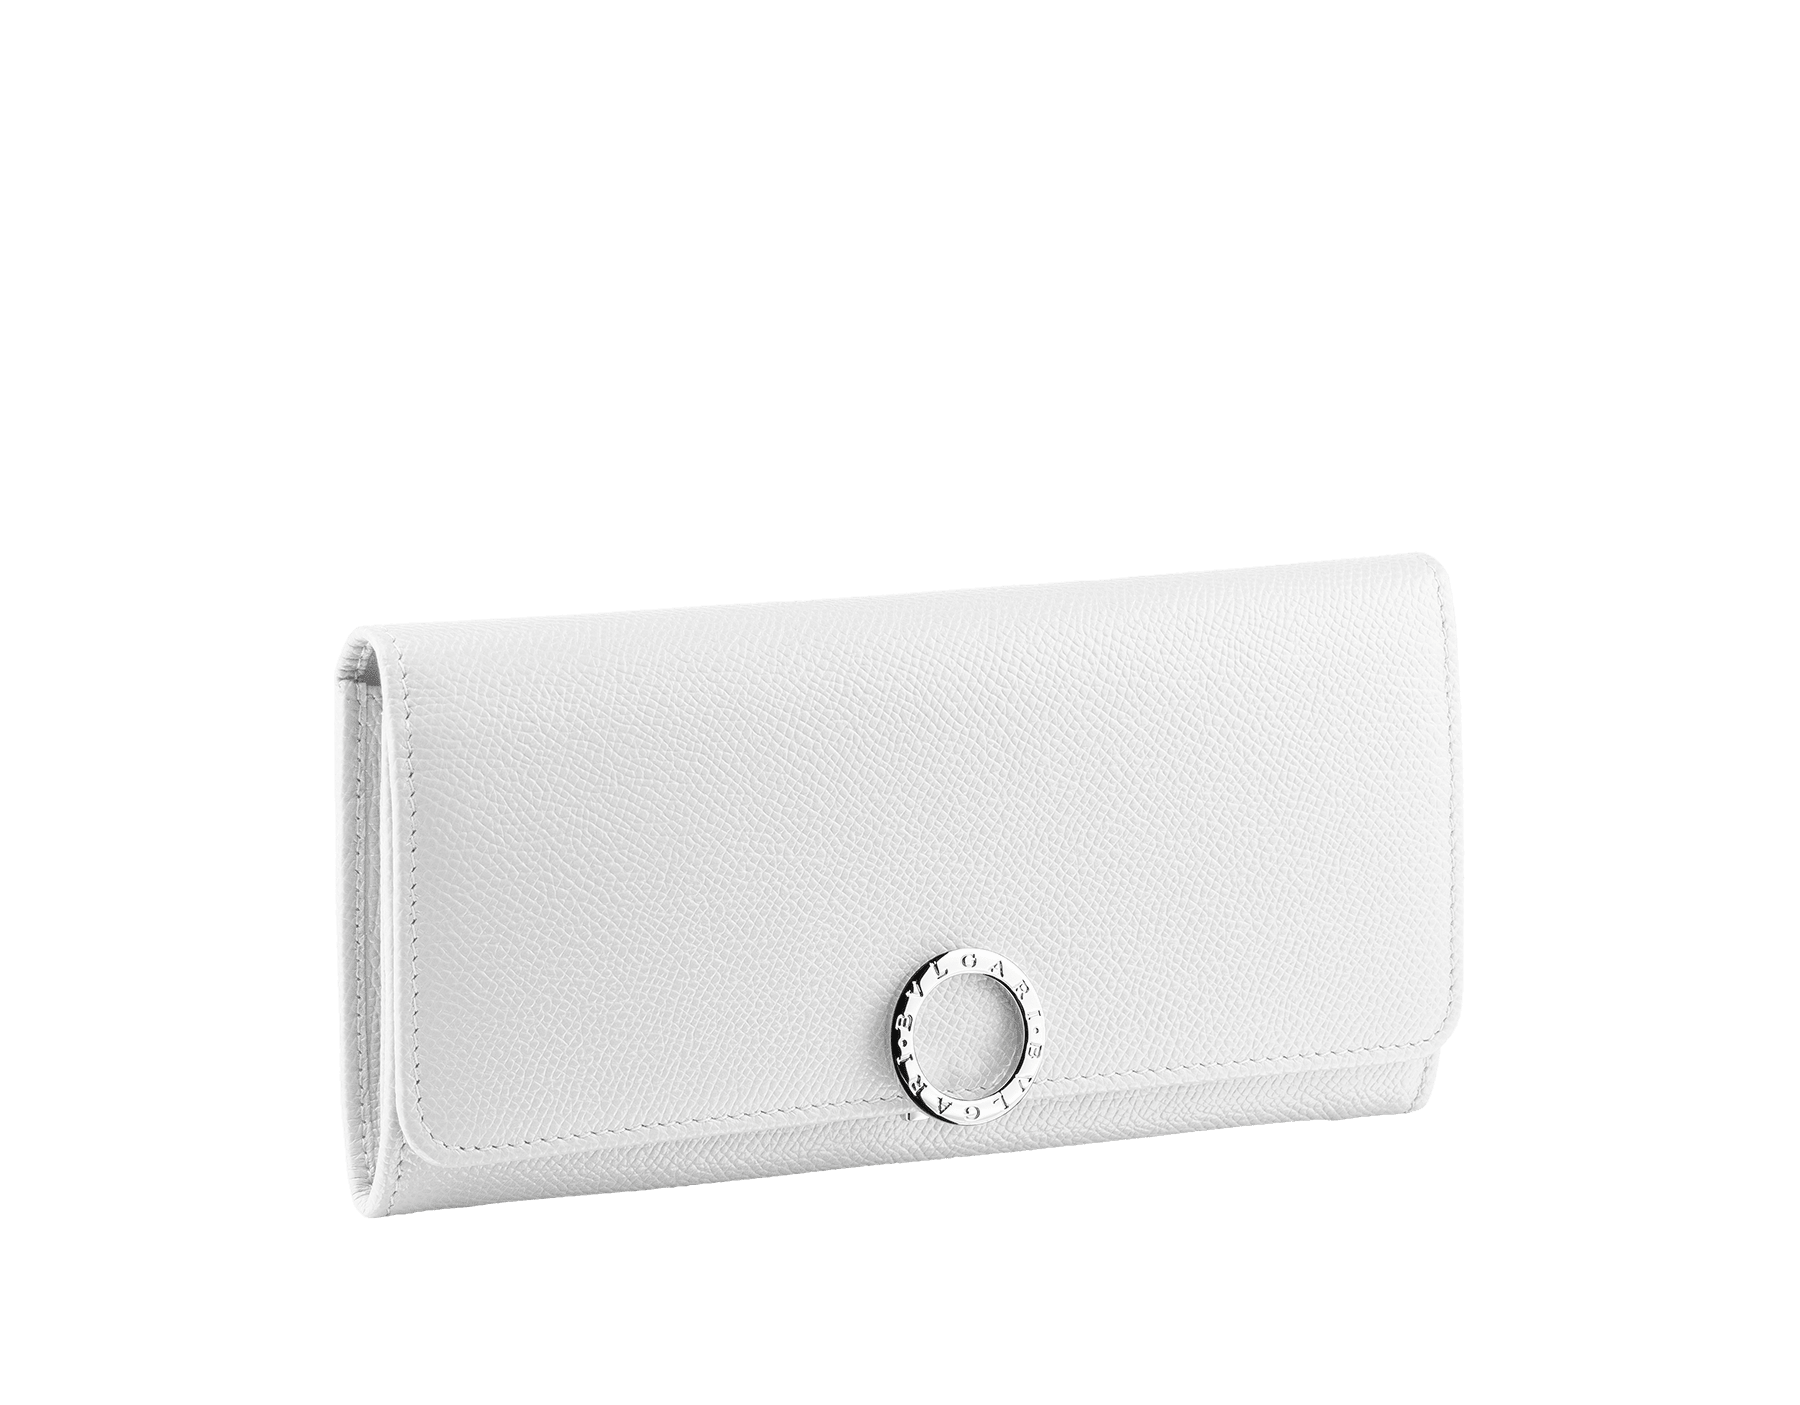 Wallet pochette in lilium grain calf leather and white nappa. Brass light gold plated hardware and iconic BVLGARI BVLGARI closure clip. Nine credit card slots, two bill compartments, one zipped coin case. 282017 image 1